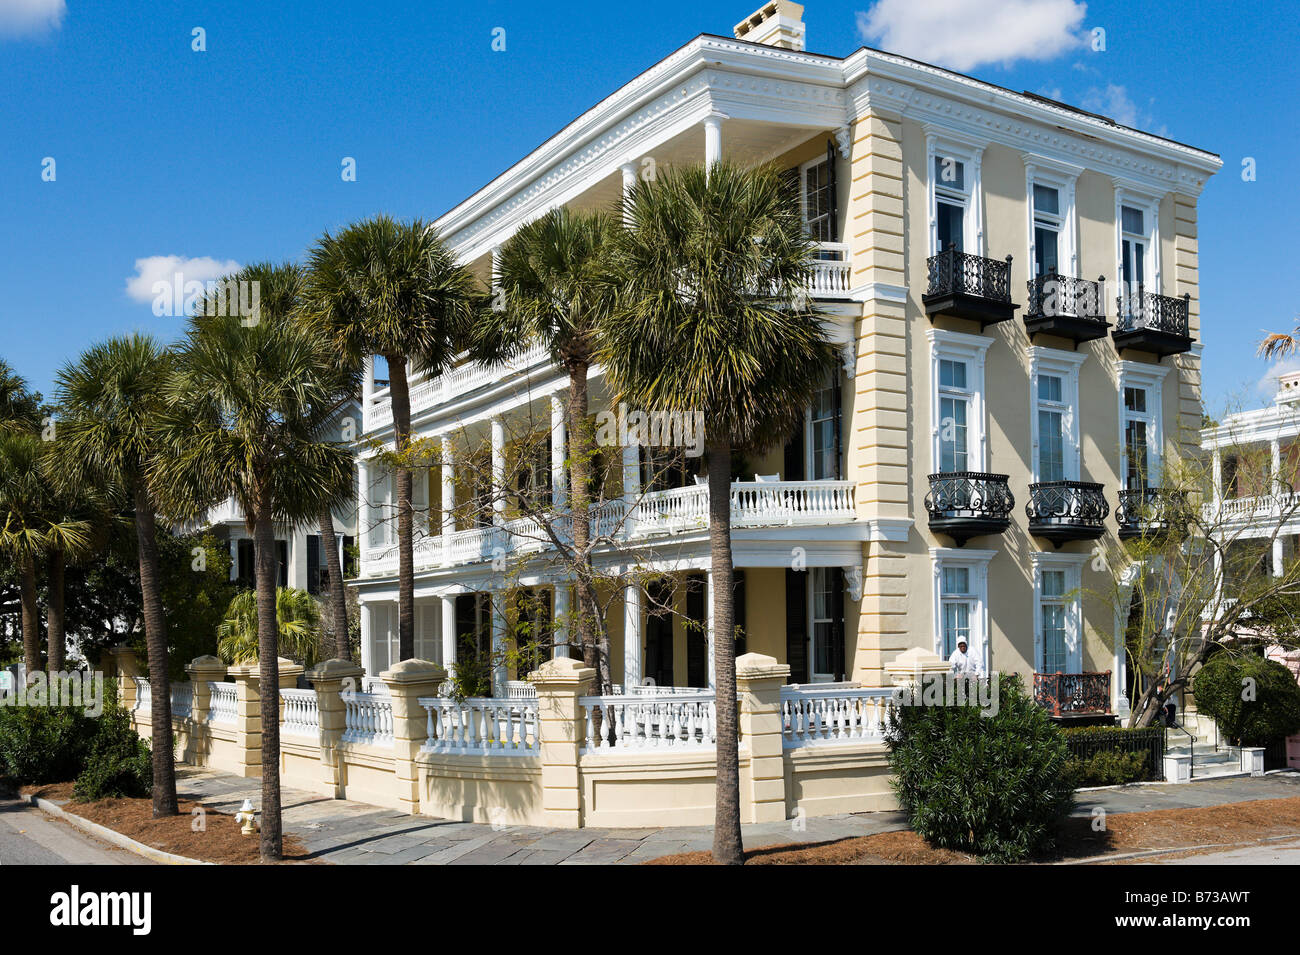 Historic waterfront mansion on the corner of South and East Battery Streets, Charleston, South Carolina, USA - Stock Image